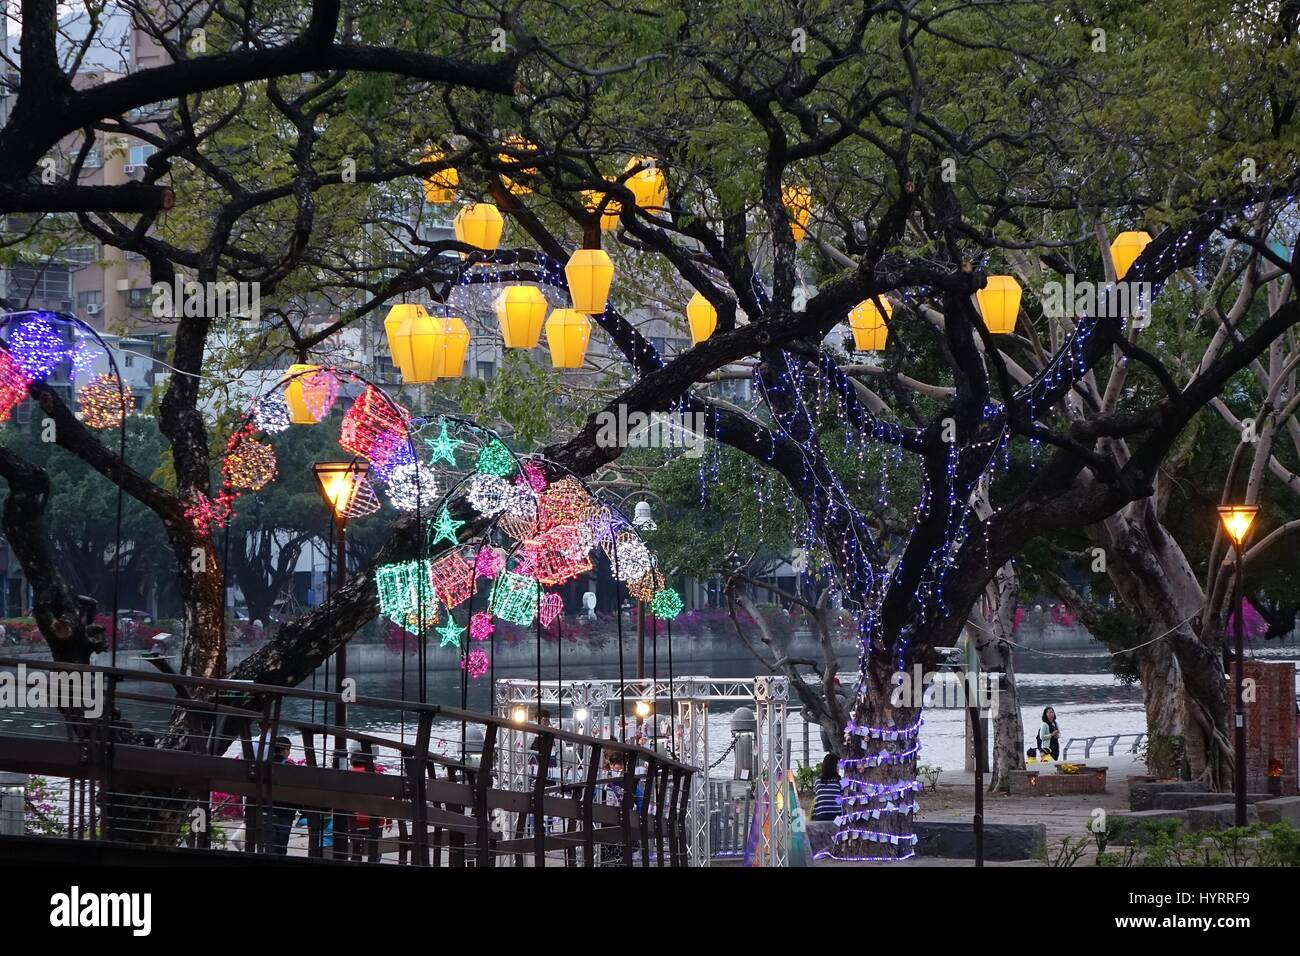 KAOHSIUNG, TAIWAN -- MARCH 6, 2015: Colorful lanterns to celebrate the Chinese year of the goat decorate the trees - Stock Image